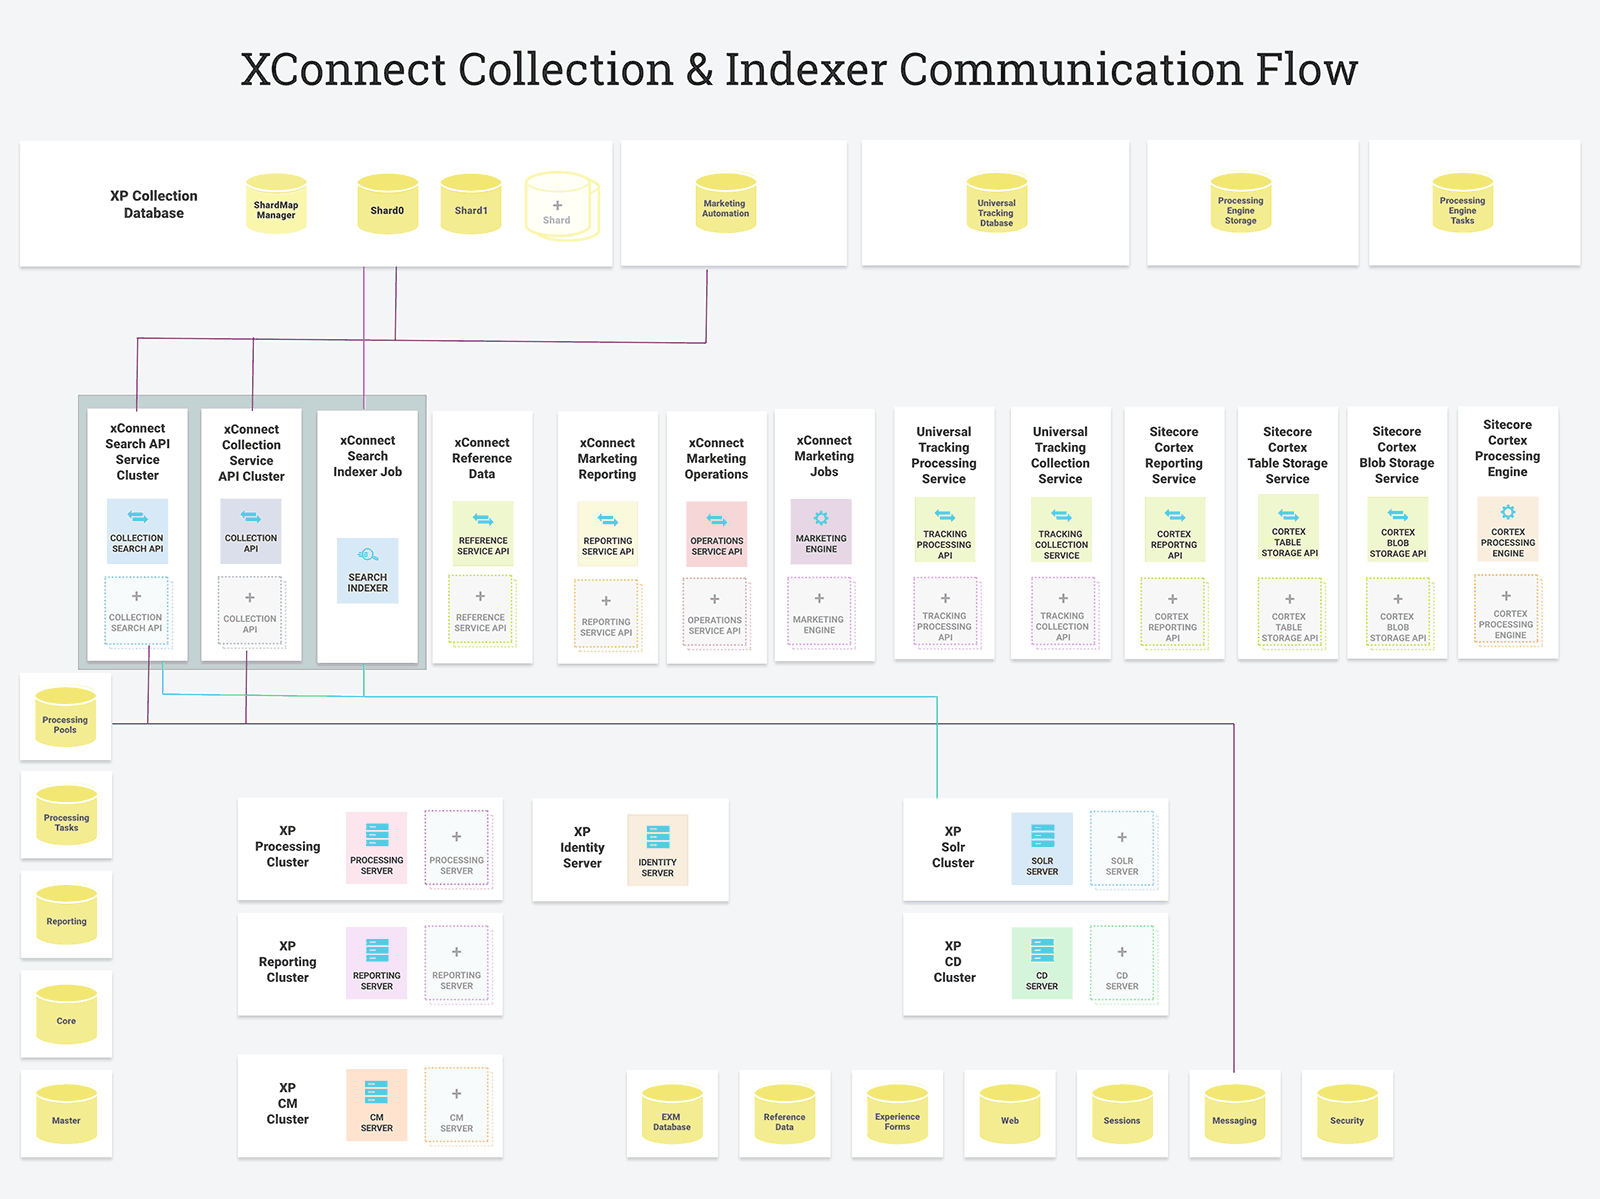 XConnect Collection & Indexer Communication Flow